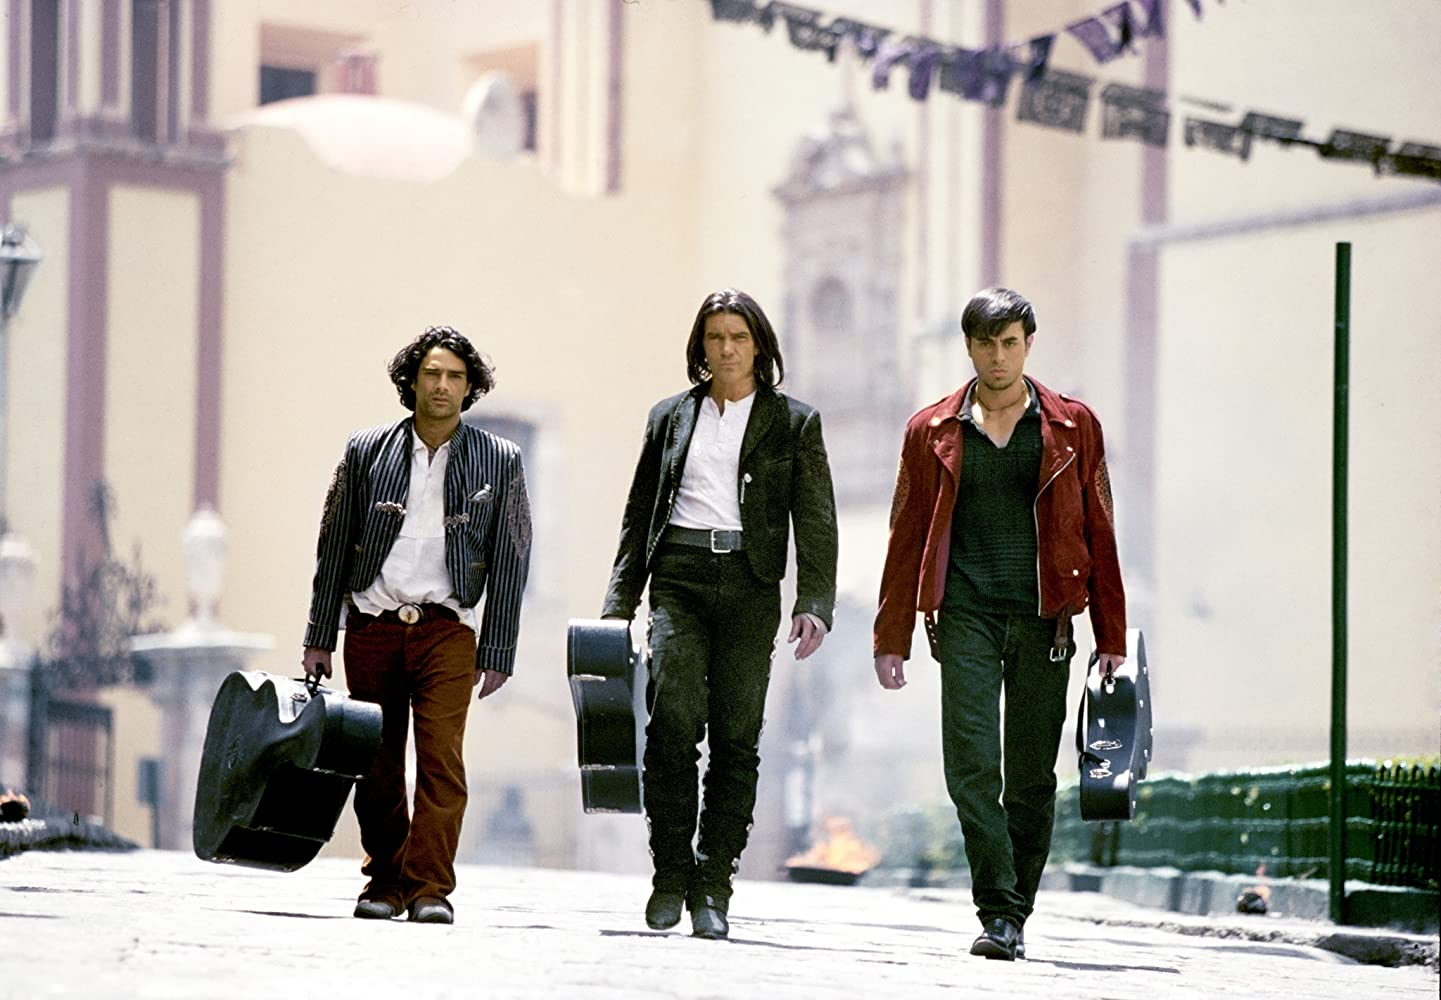 Antonio Banderas, Enrique Iglesias, and Marco Leonardi in Once Upon a Time in Mexico (2003)